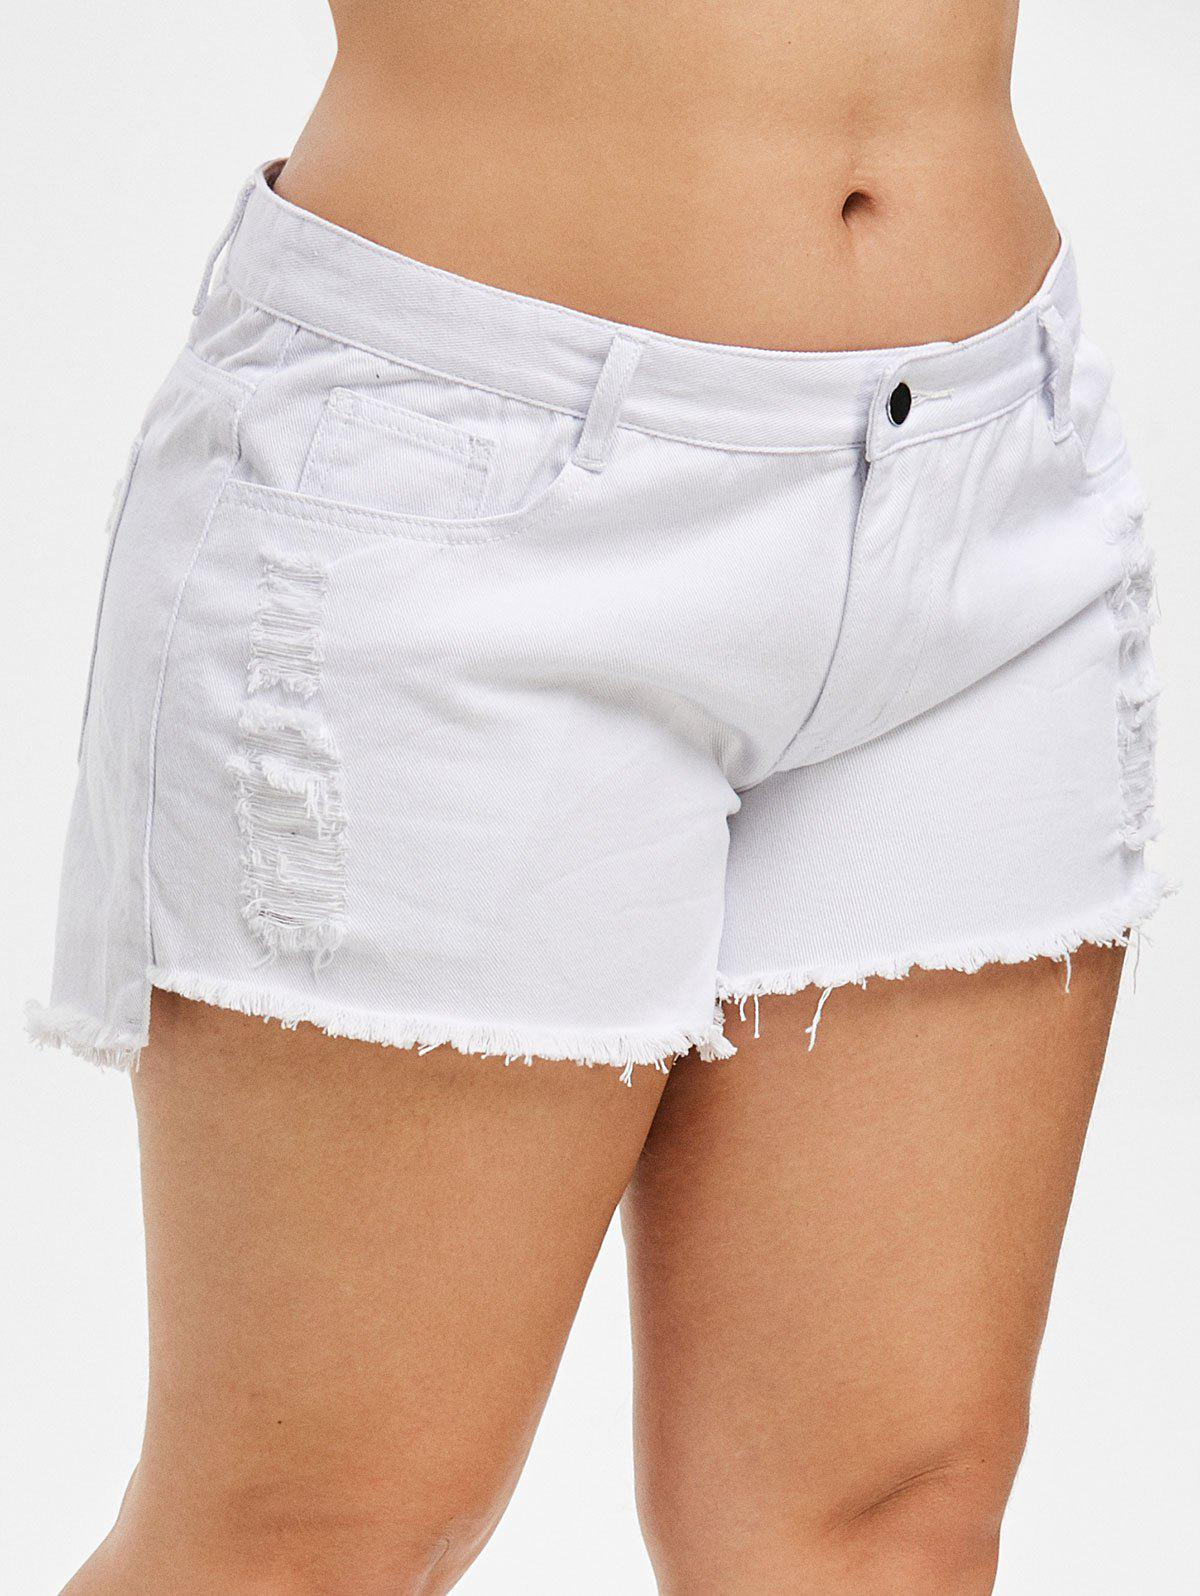 Plus Size Ripped Frayed Denim Shorts - WHITE 5X